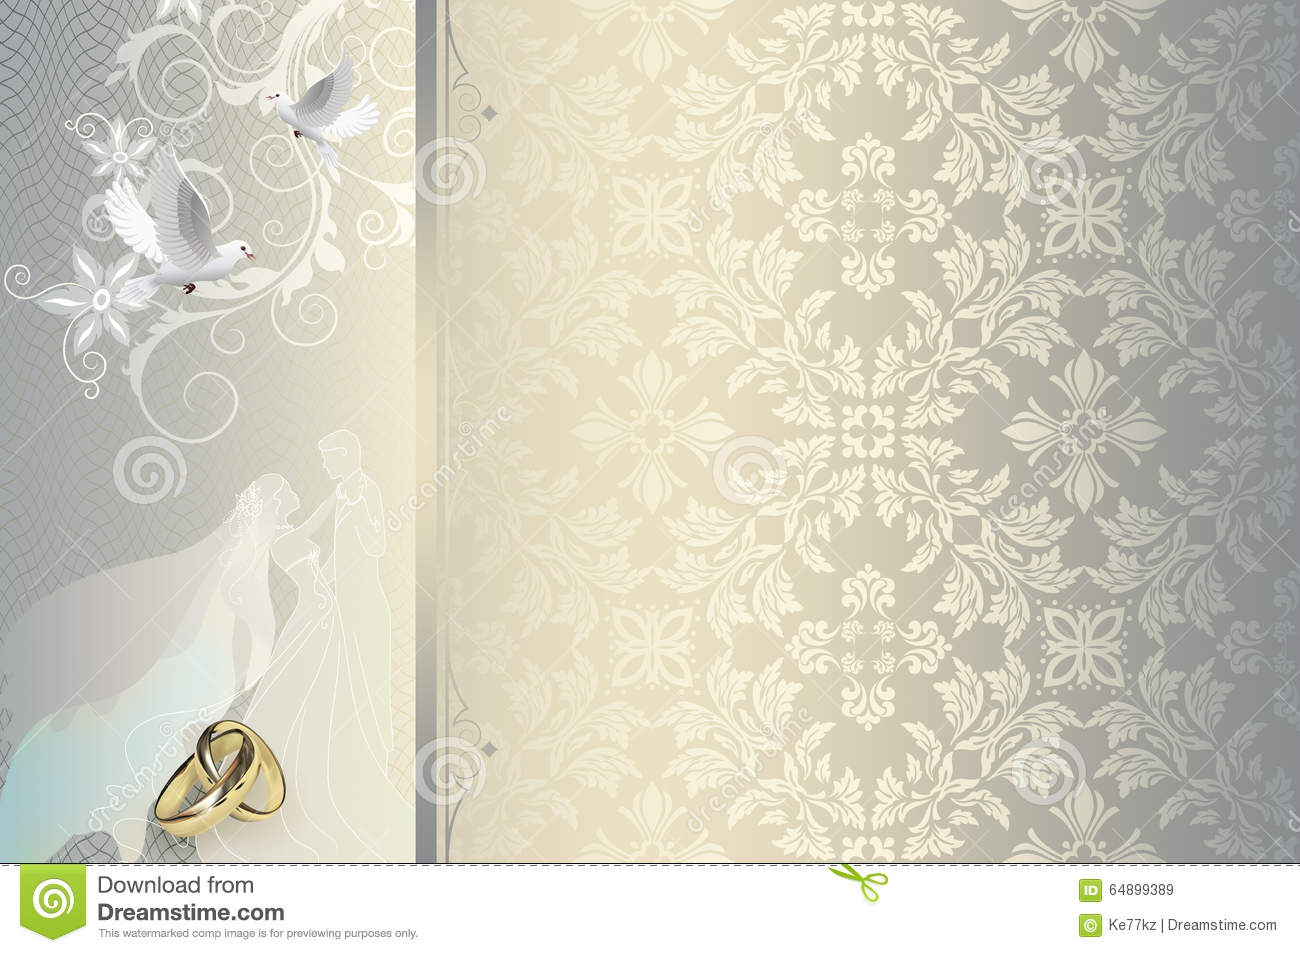 25 Unique Background Design For Wedding Cards